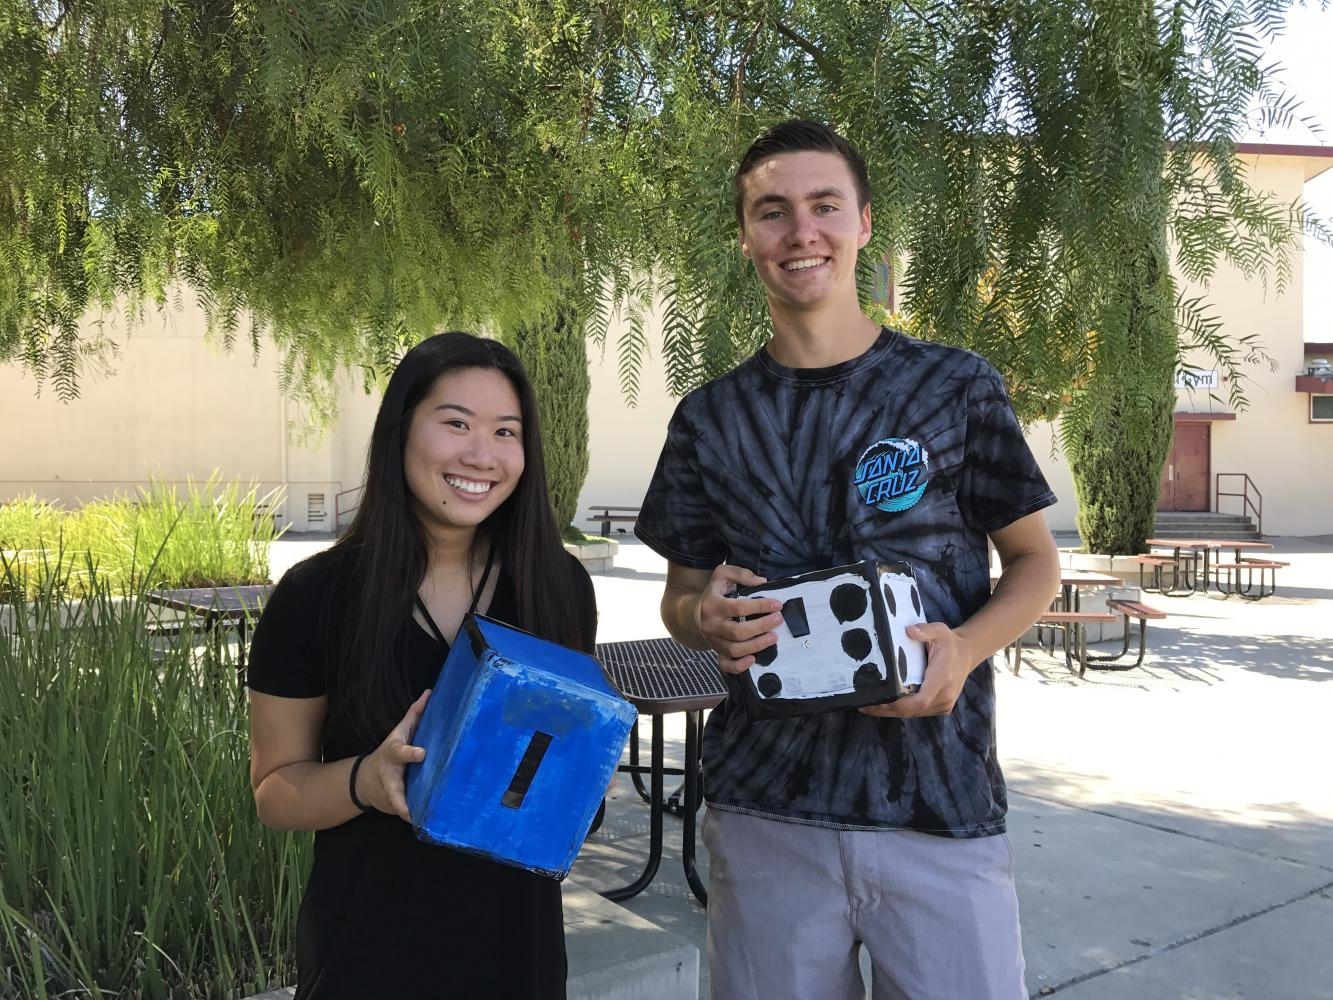 Andrew McGinty ('18) and Allison O'Yang ('18) show off their newly made cardboard cameras